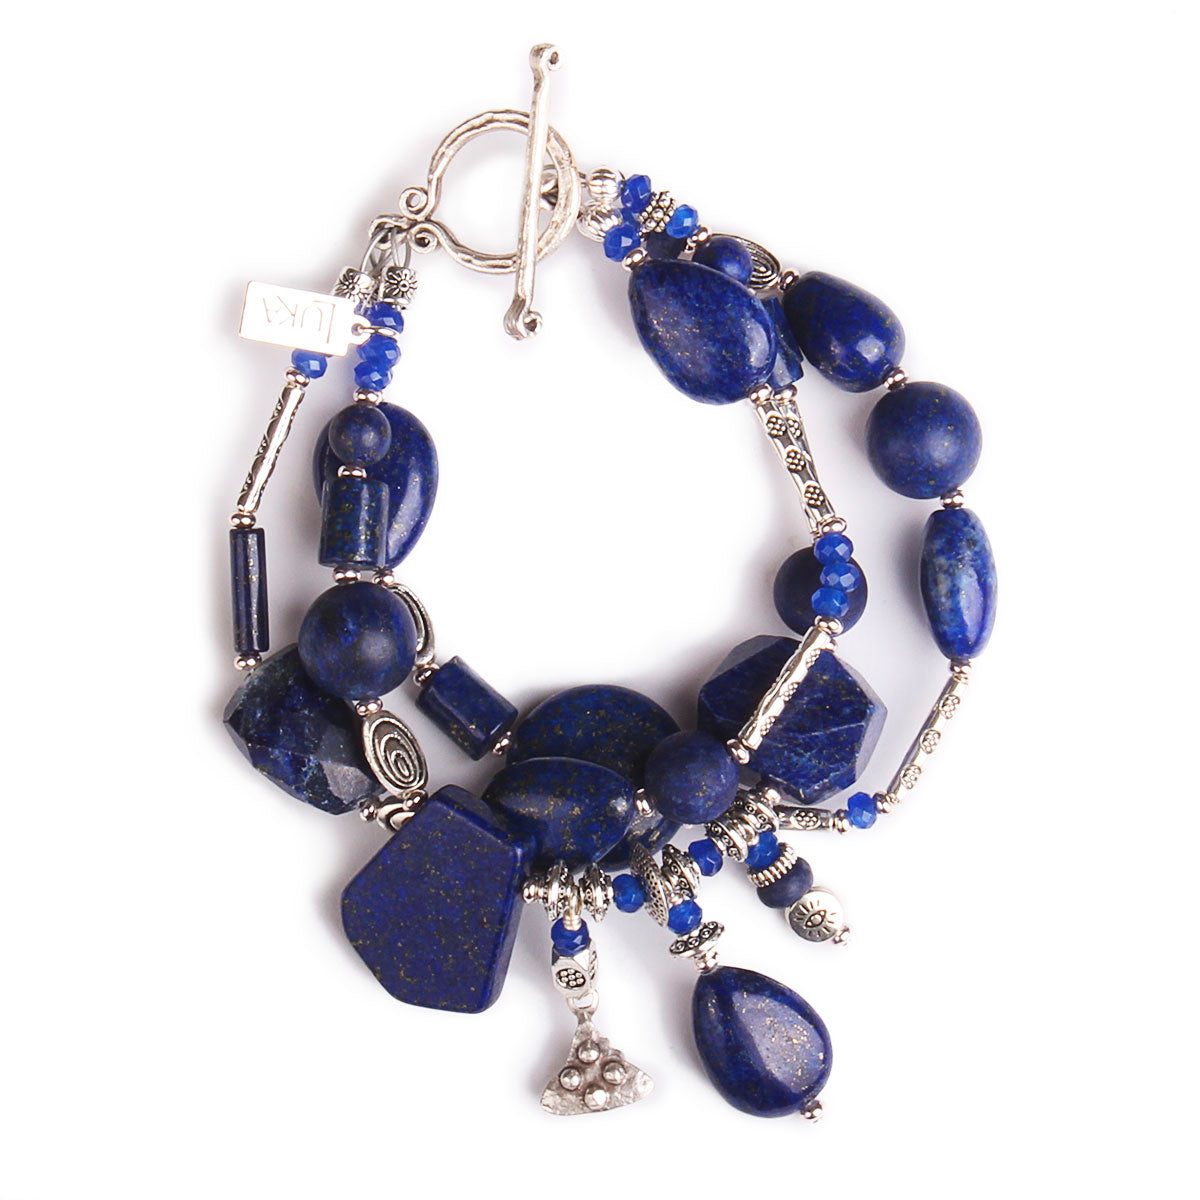 N°554 The Lapis Lazuli Simplicity Contract Statement Bracelet